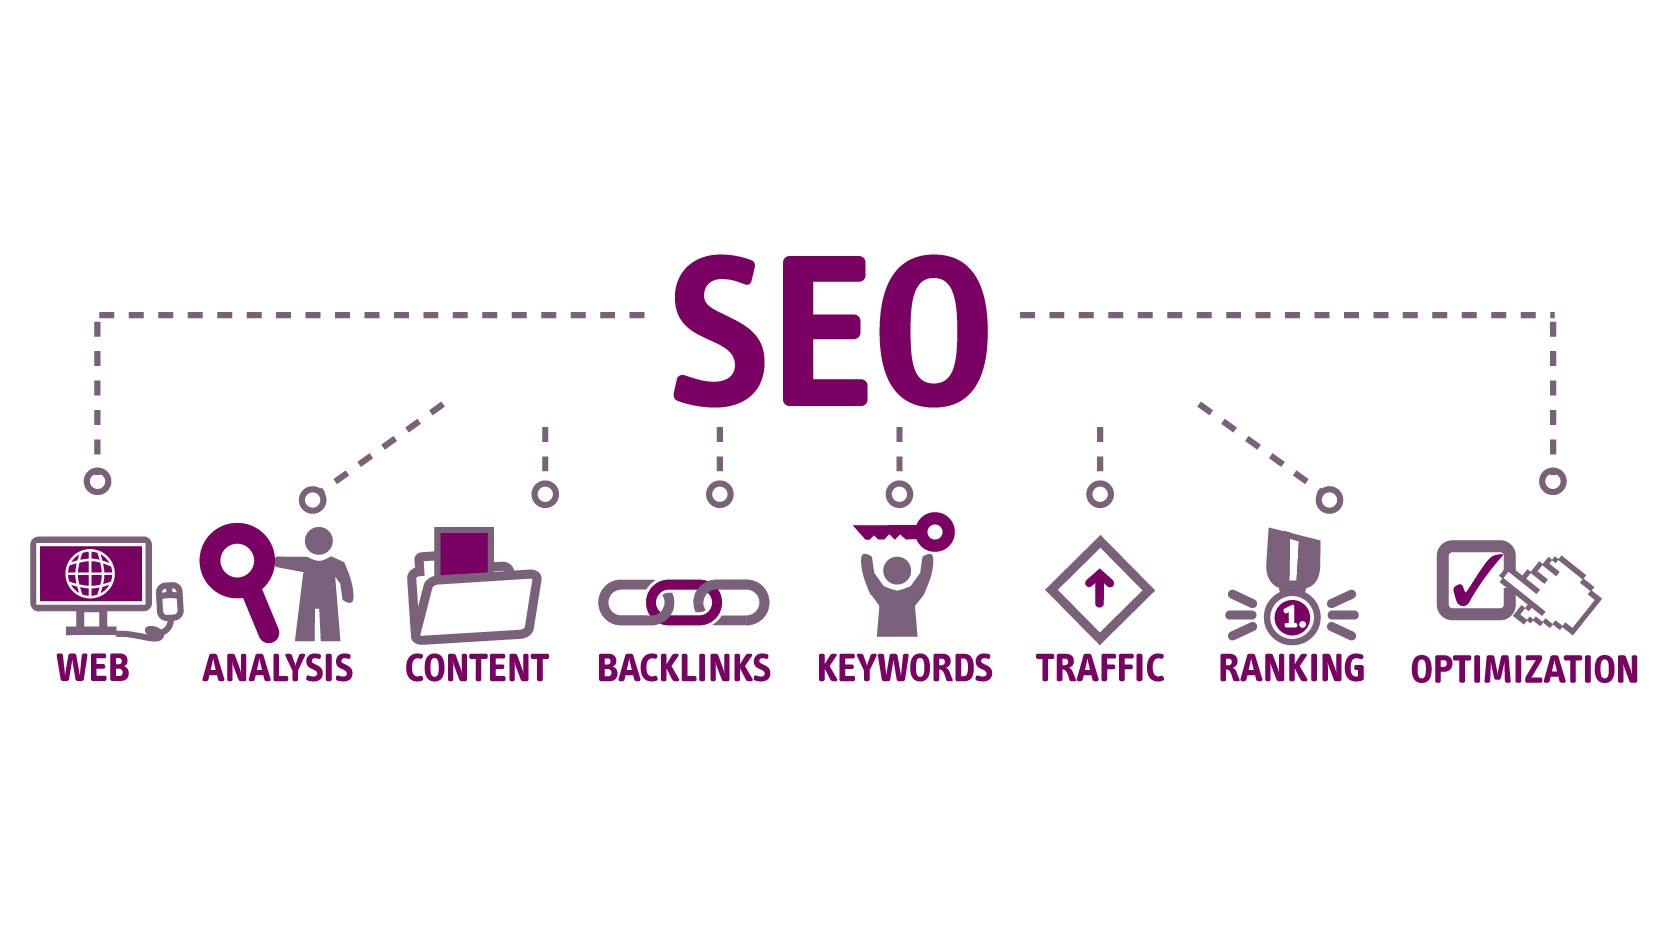 https://kite-agency.com/3-seo-trends-to-follow-in-2020/